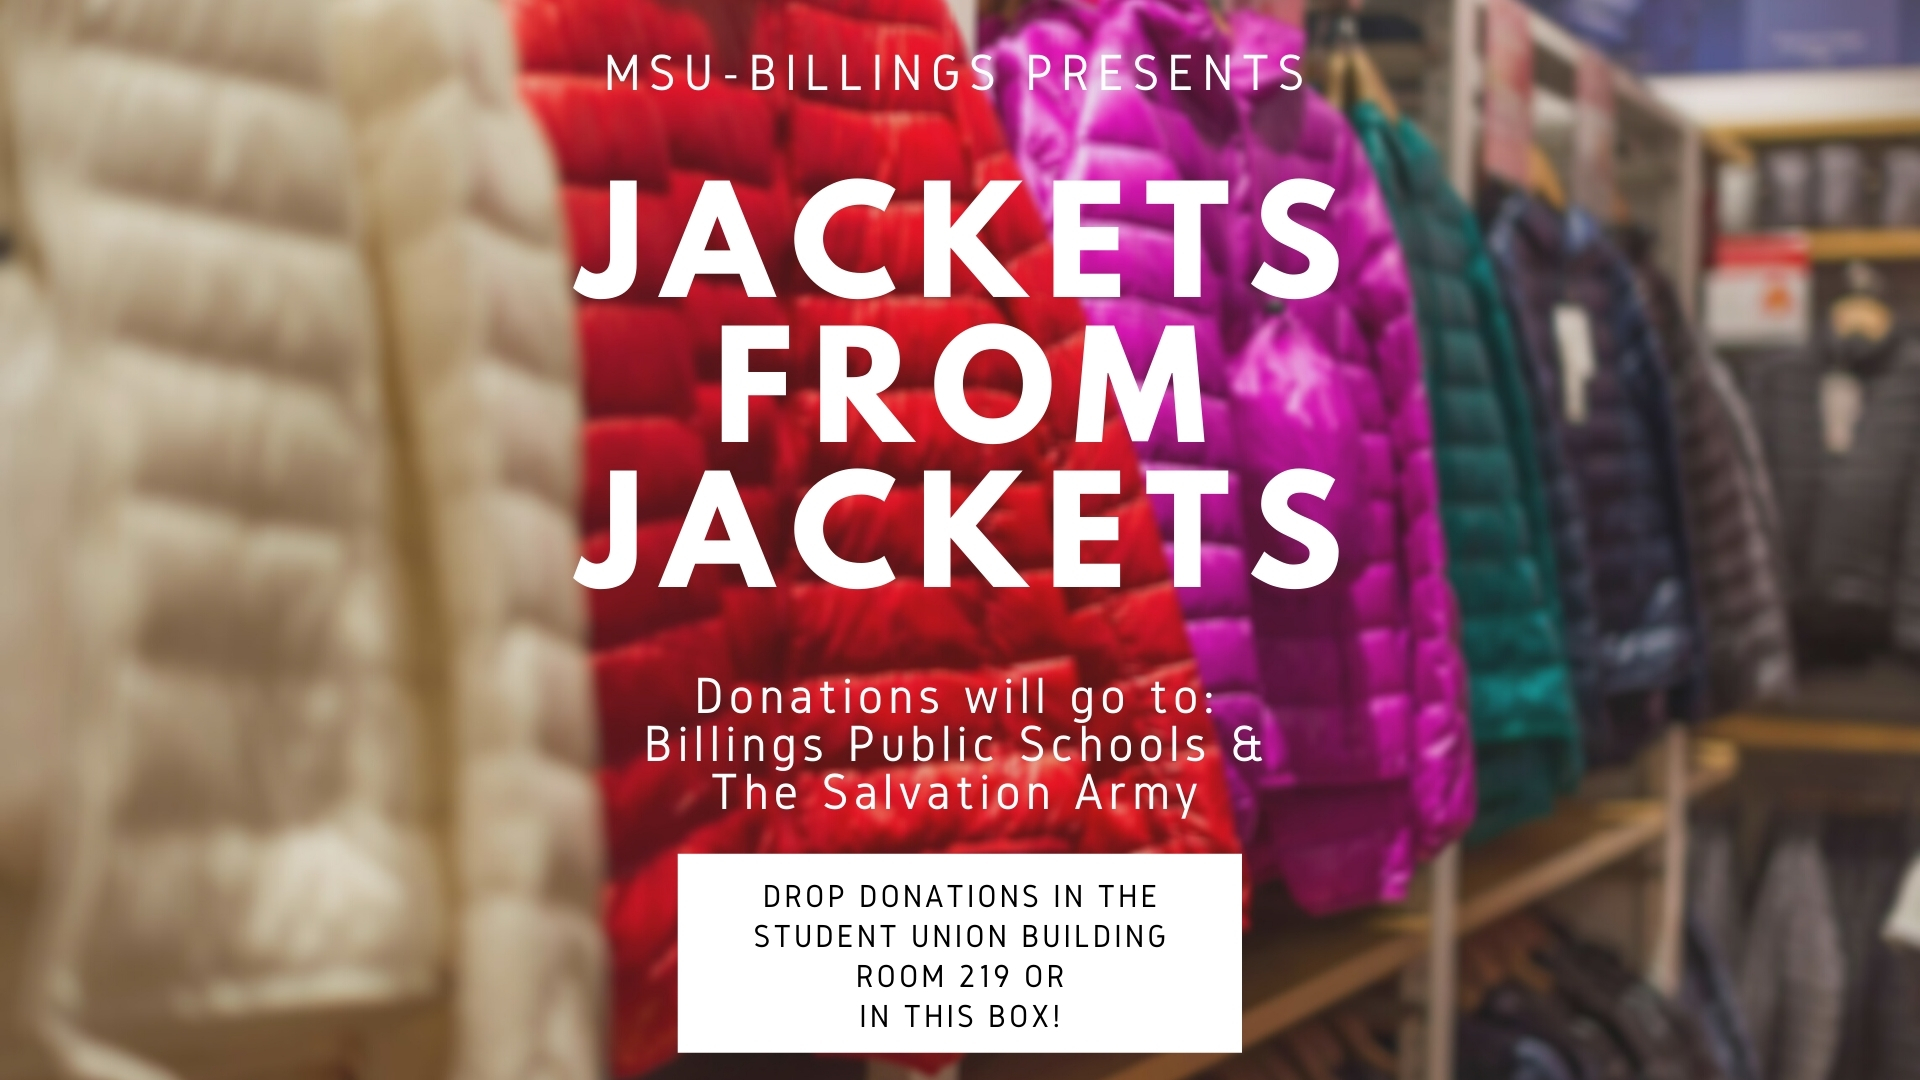 MSU-Billings presents Jackets from Jackets Donations will do to Billings Public Schools and the Salvation Army Drop donations in the student union building room 219